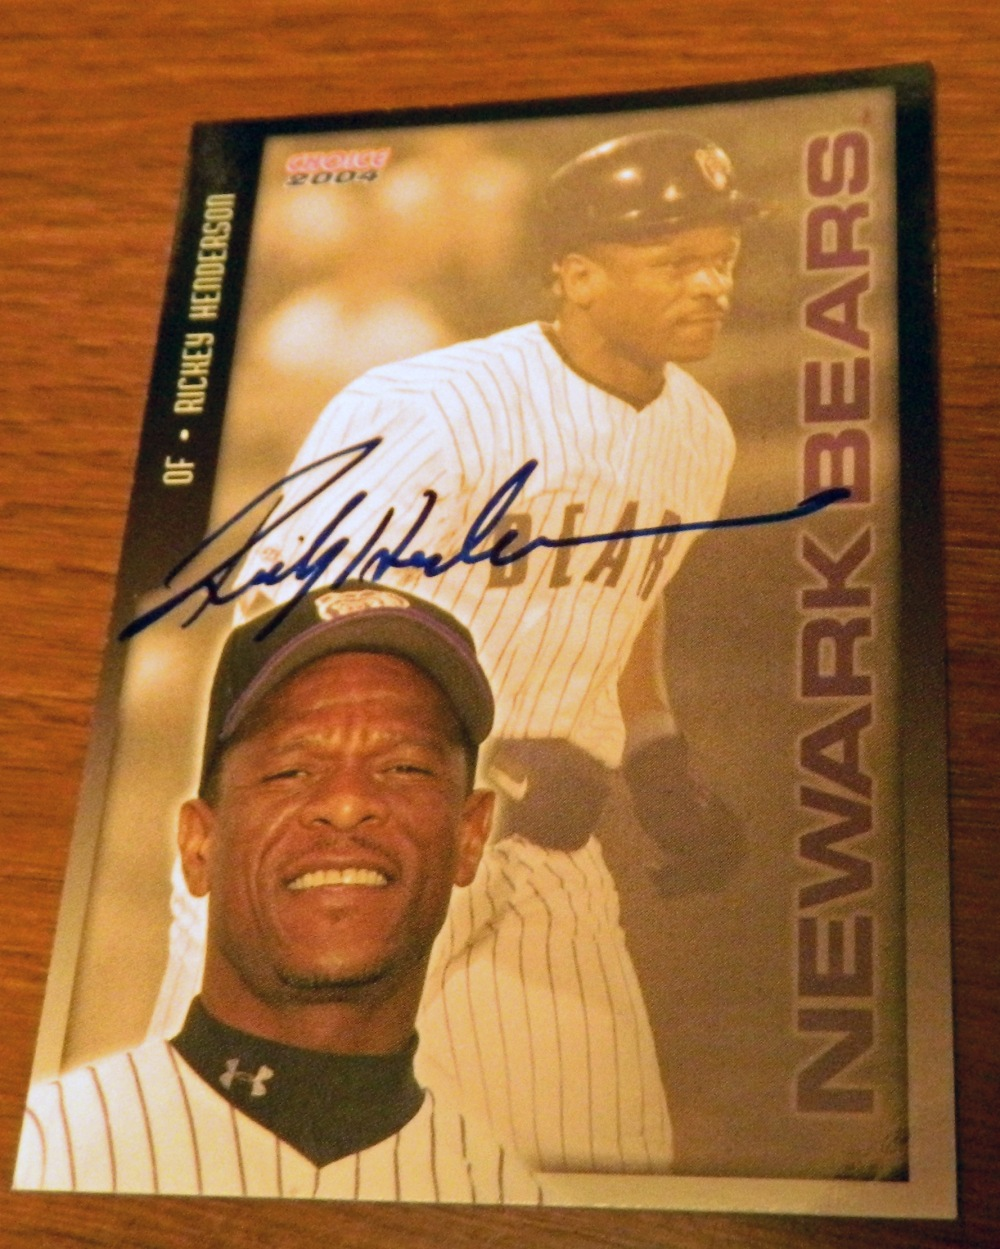 Signed Rickey Henderson 2004 Newark Bears minor league baseball card from my collection